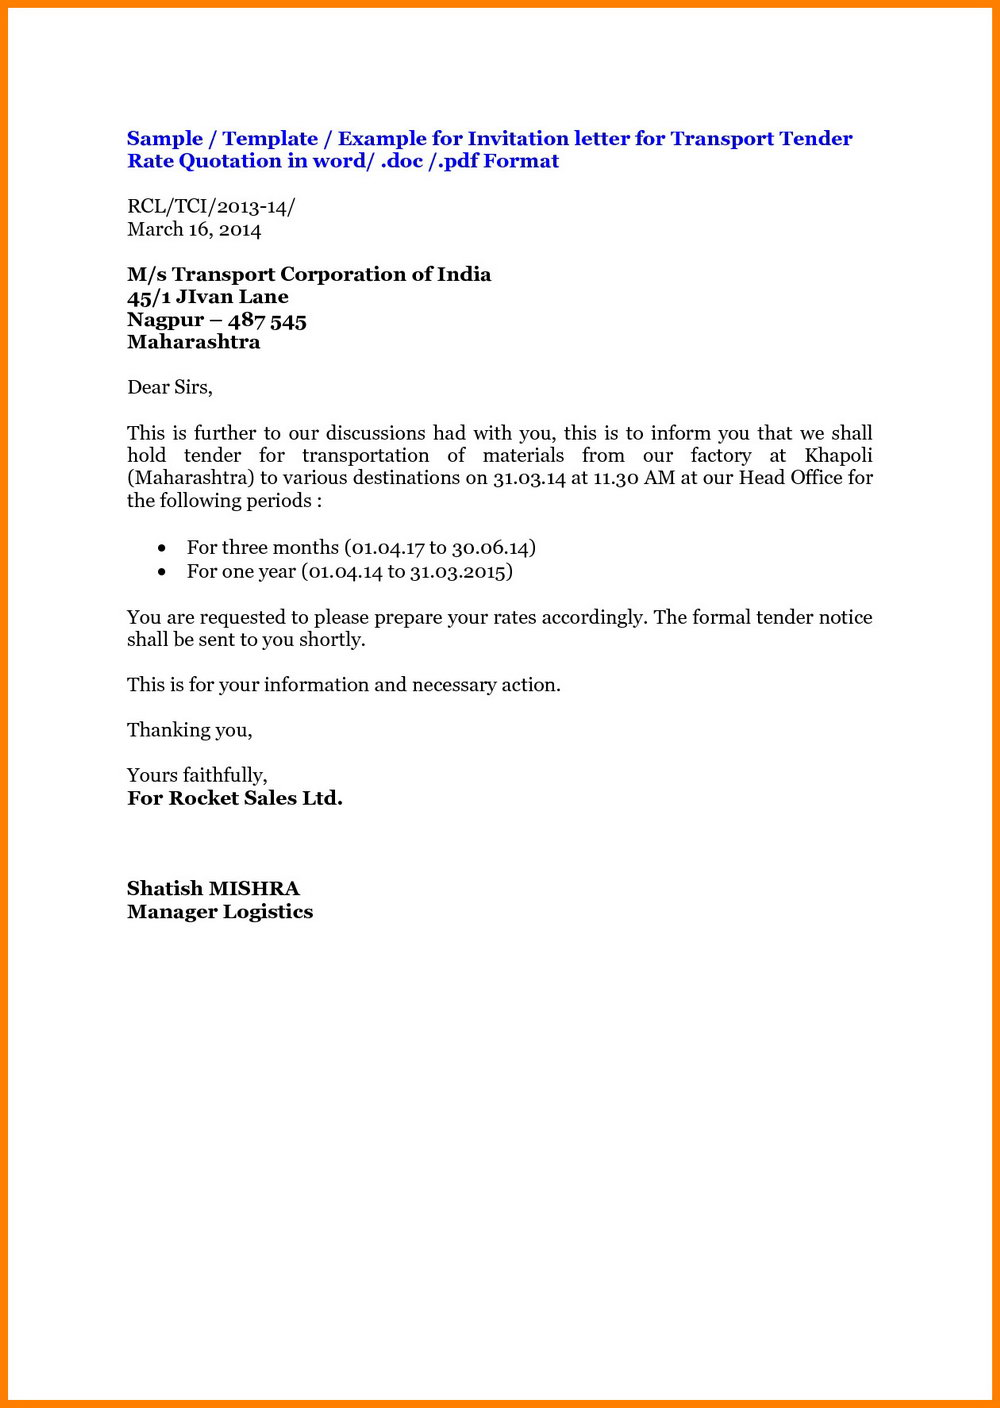 Sample Request For Quotation Email Template